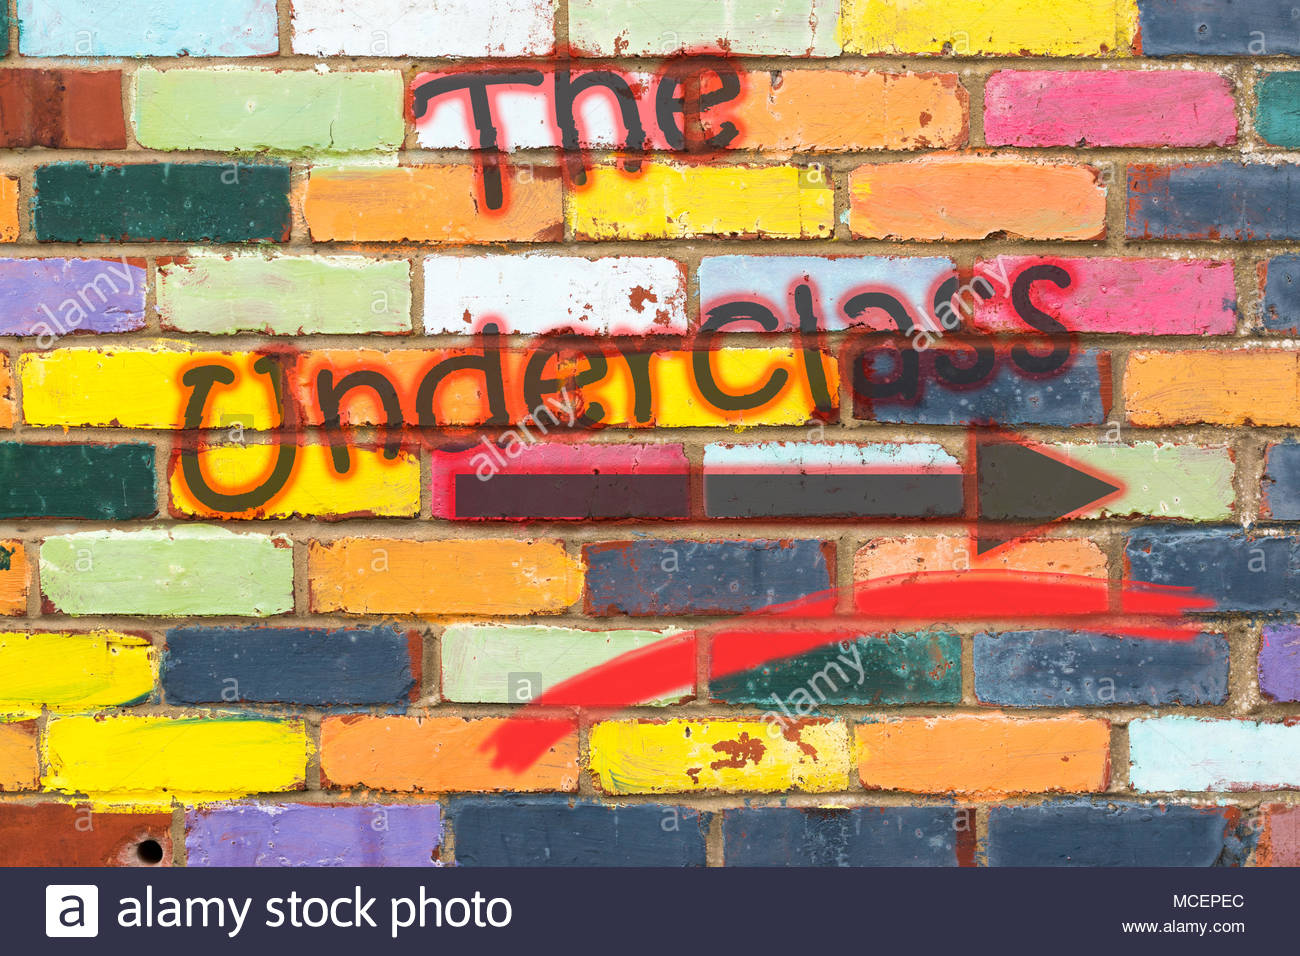 Looking at a very colourful brickwall with the wording The Underclass with arrow. Dorset, England - Stock Image